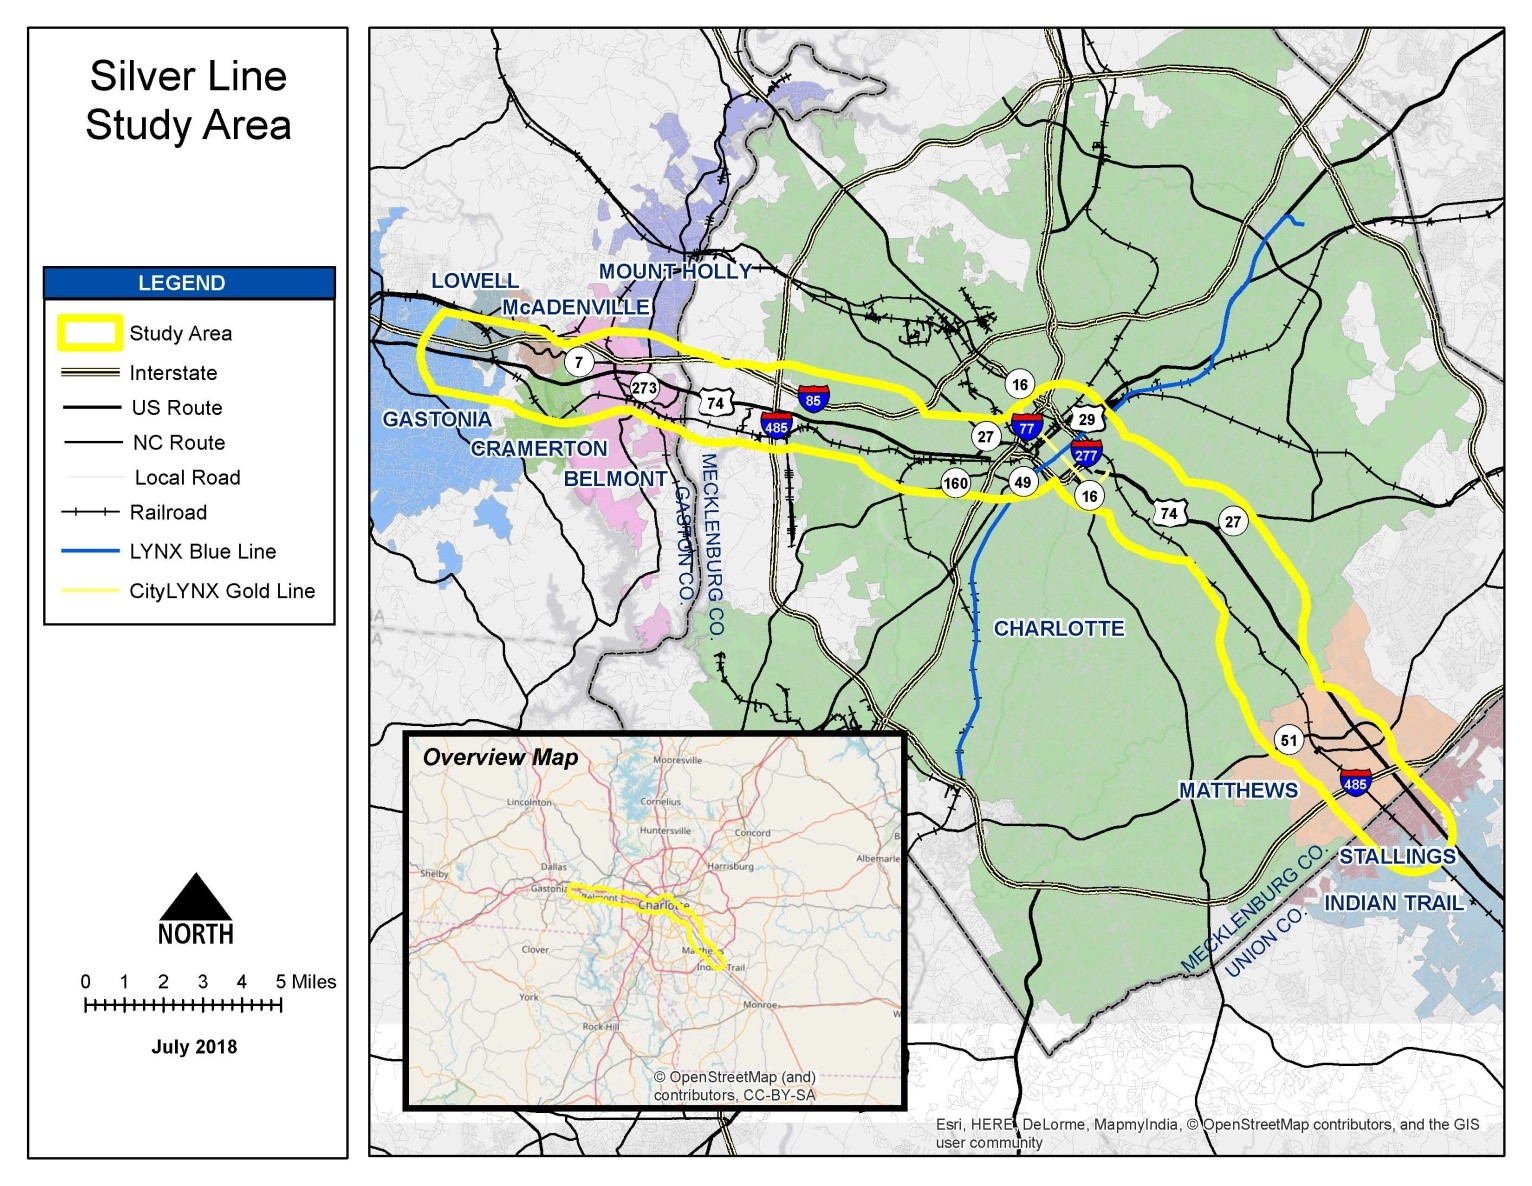 Map of the Silver Line Study Area from Indian Trail/ Stallings to Gastonia/Lowell, along the 77/277 route.